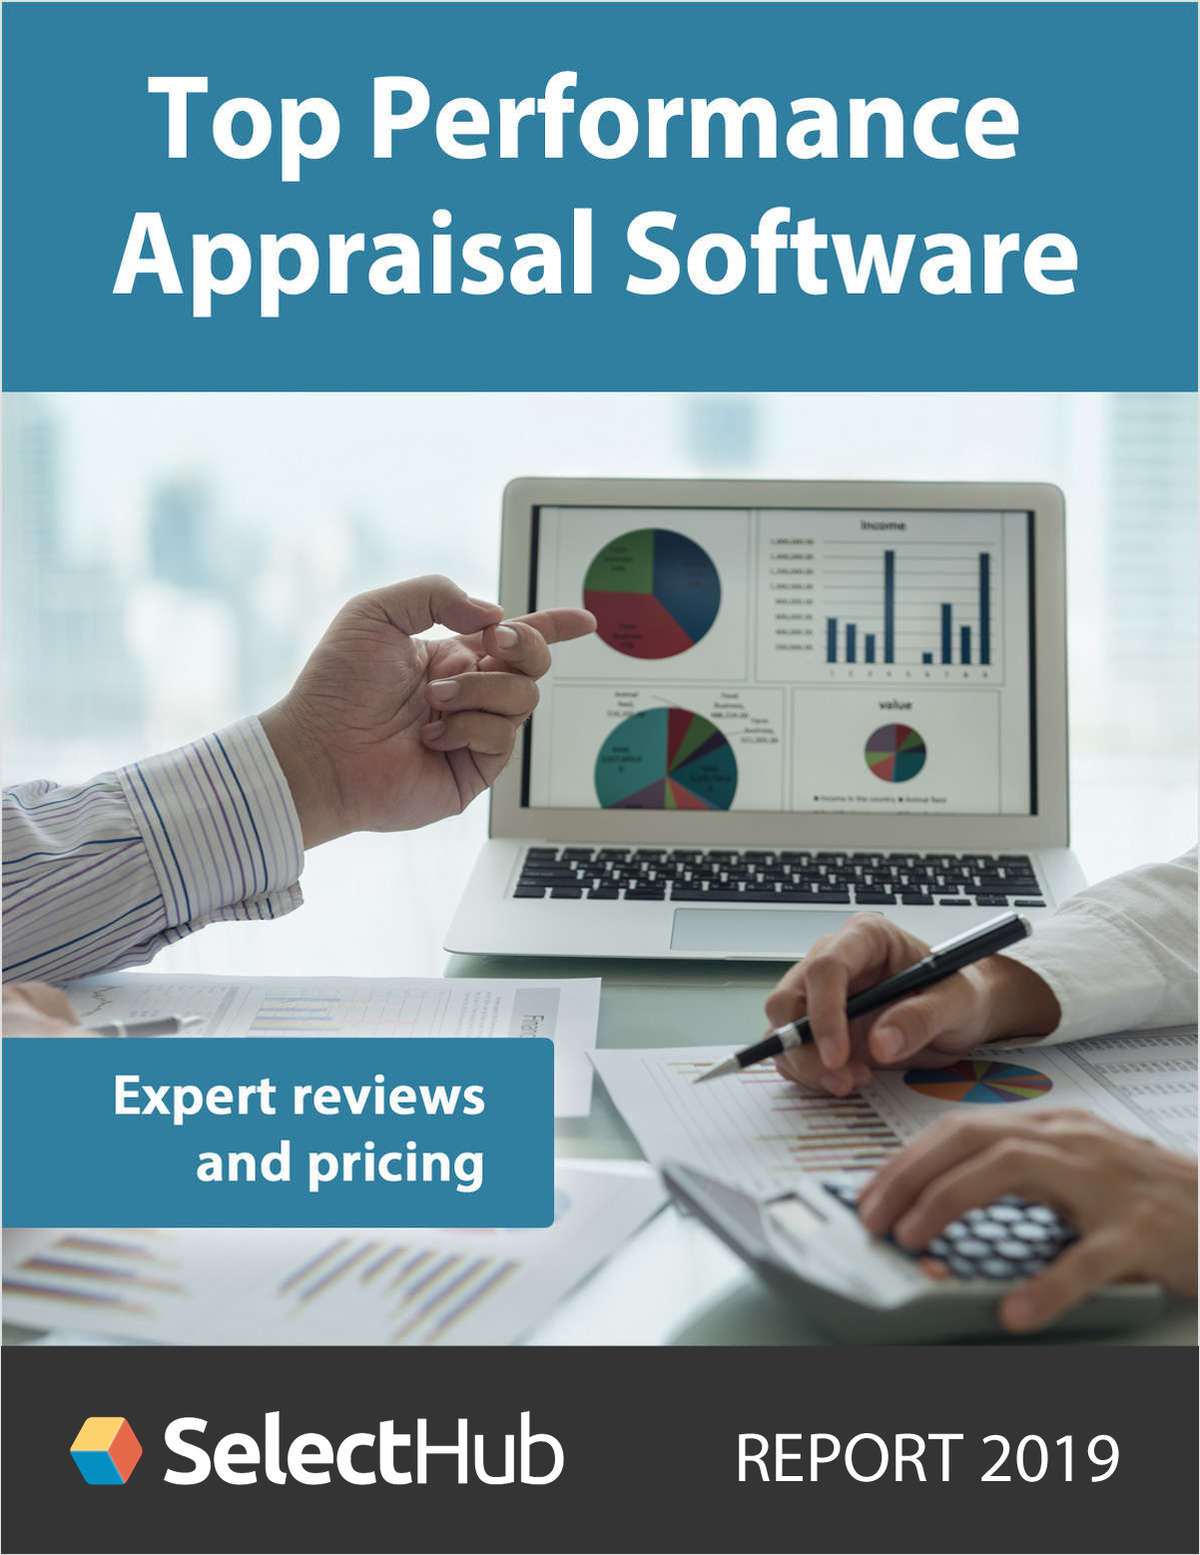 Top Performance Appraisal Software 2018--Get Expert Reviews and Pricing